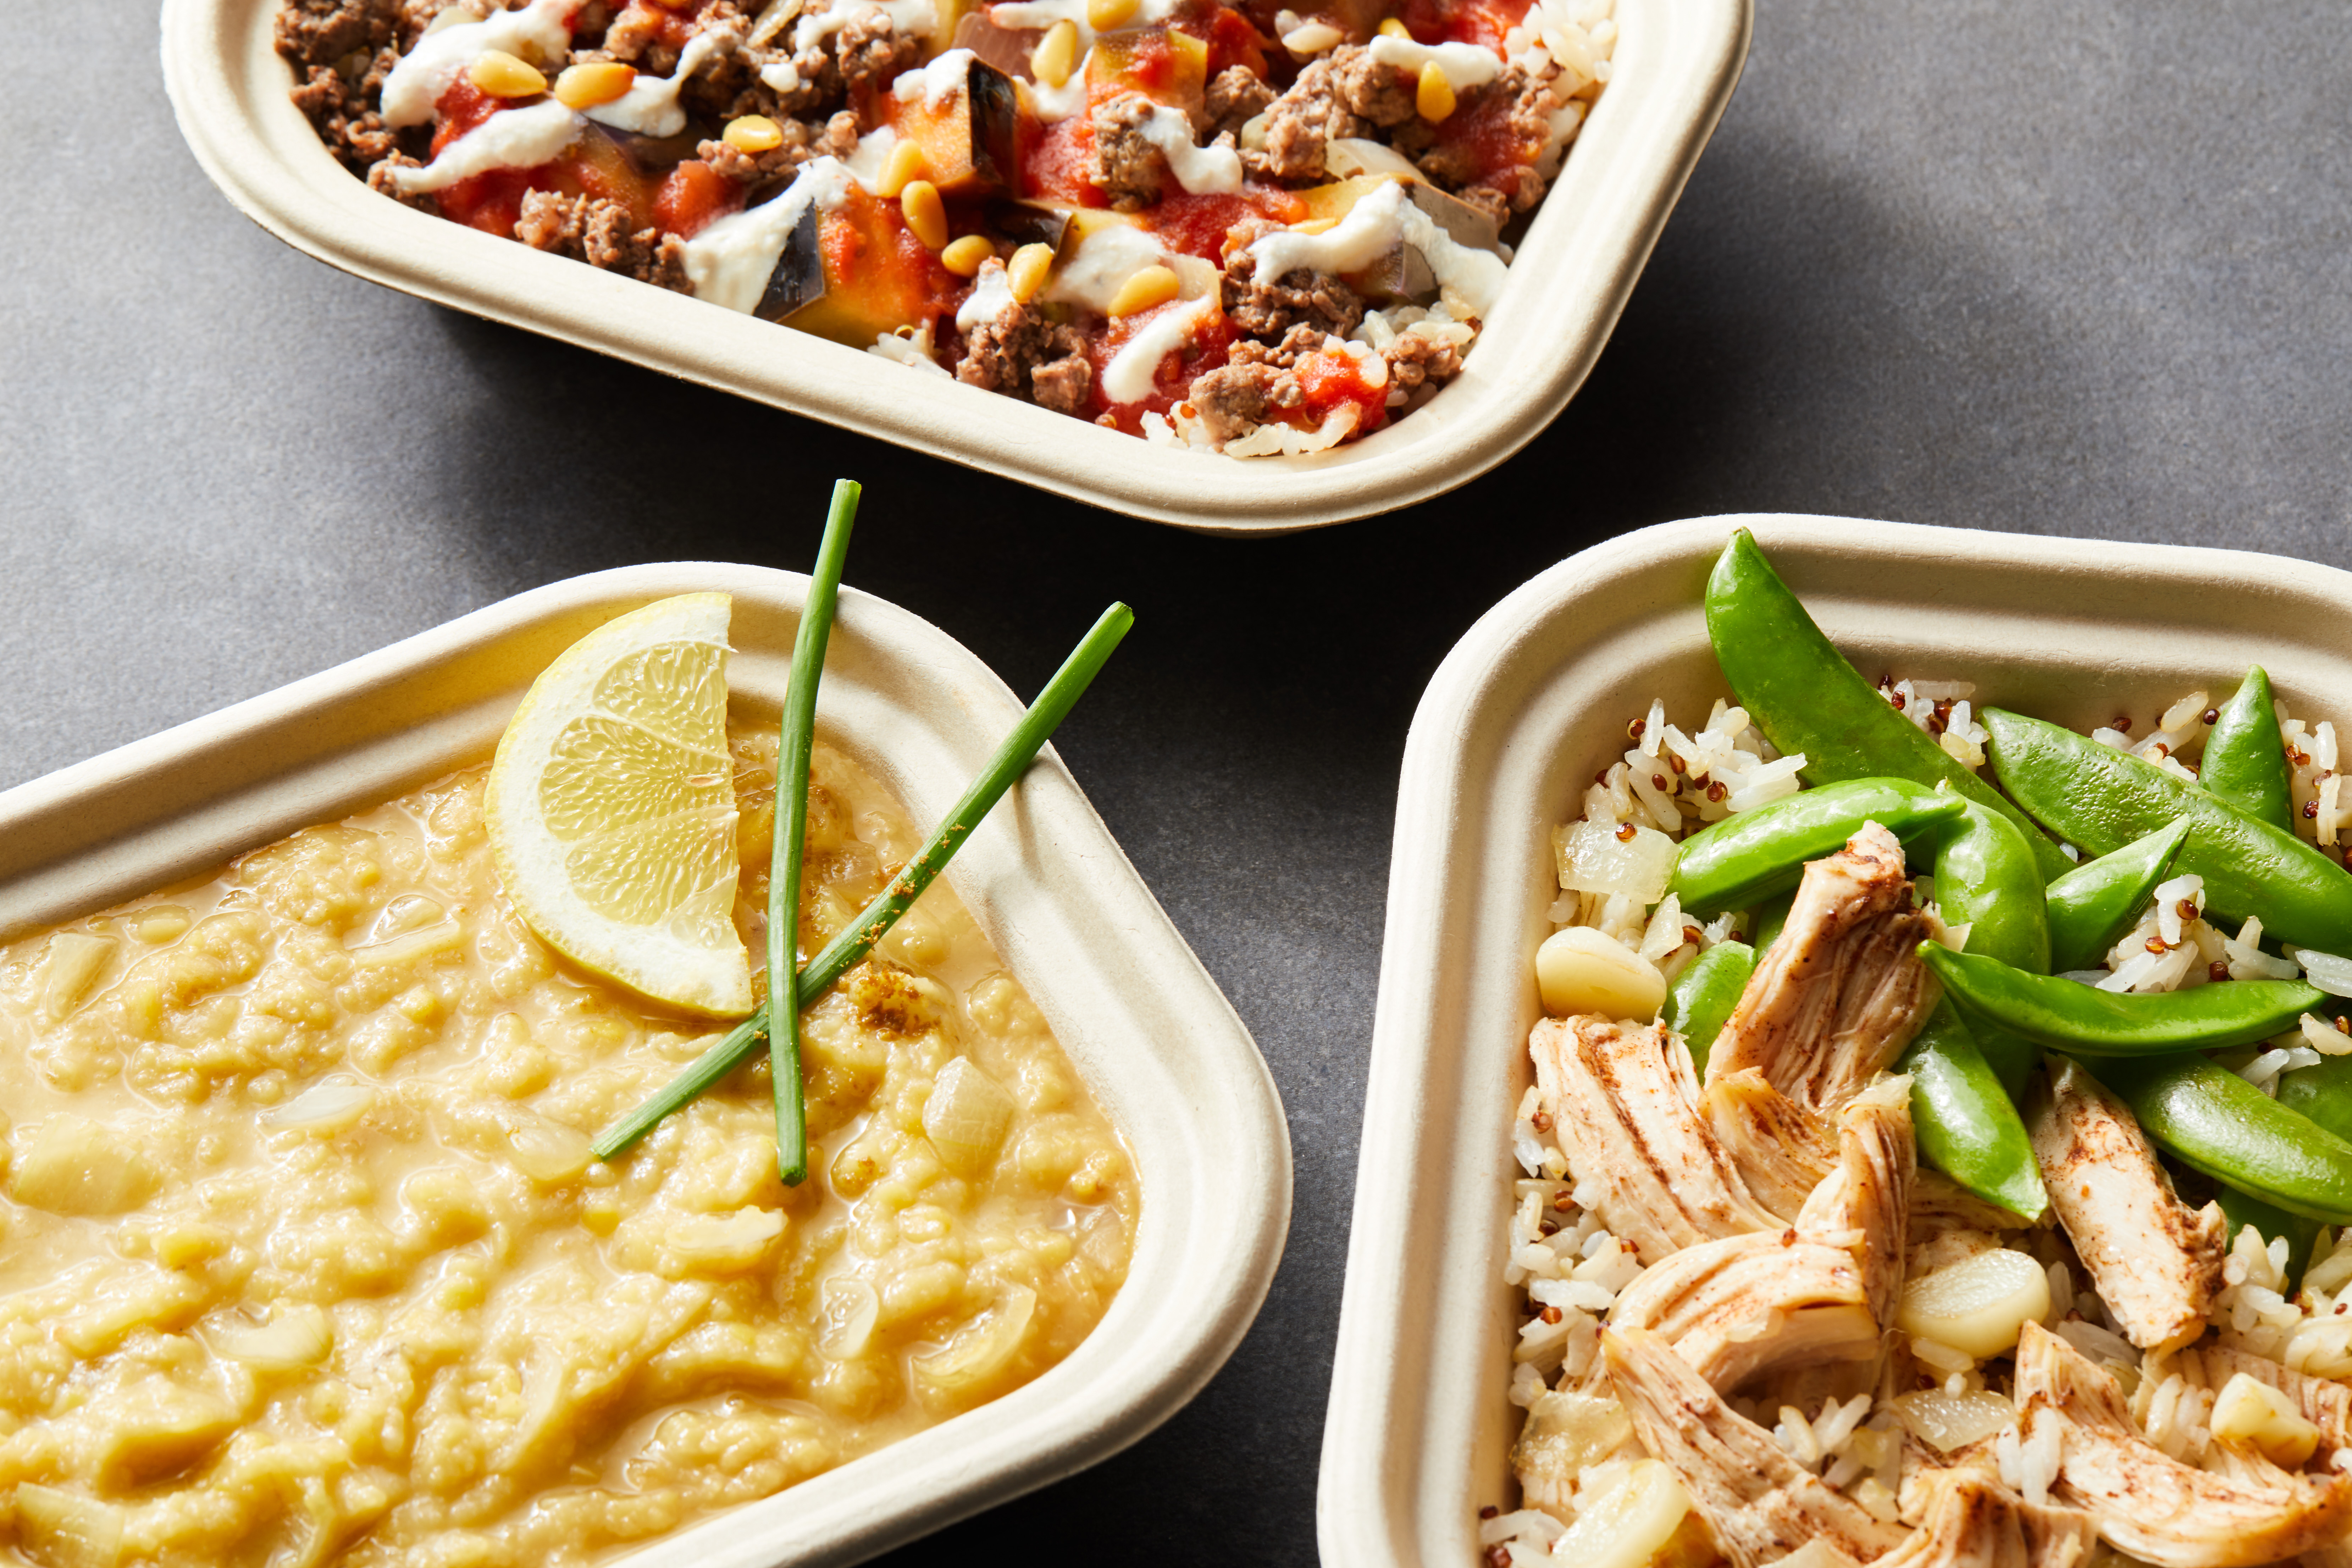 Chef prepared Mediterranean-style meals delivered.